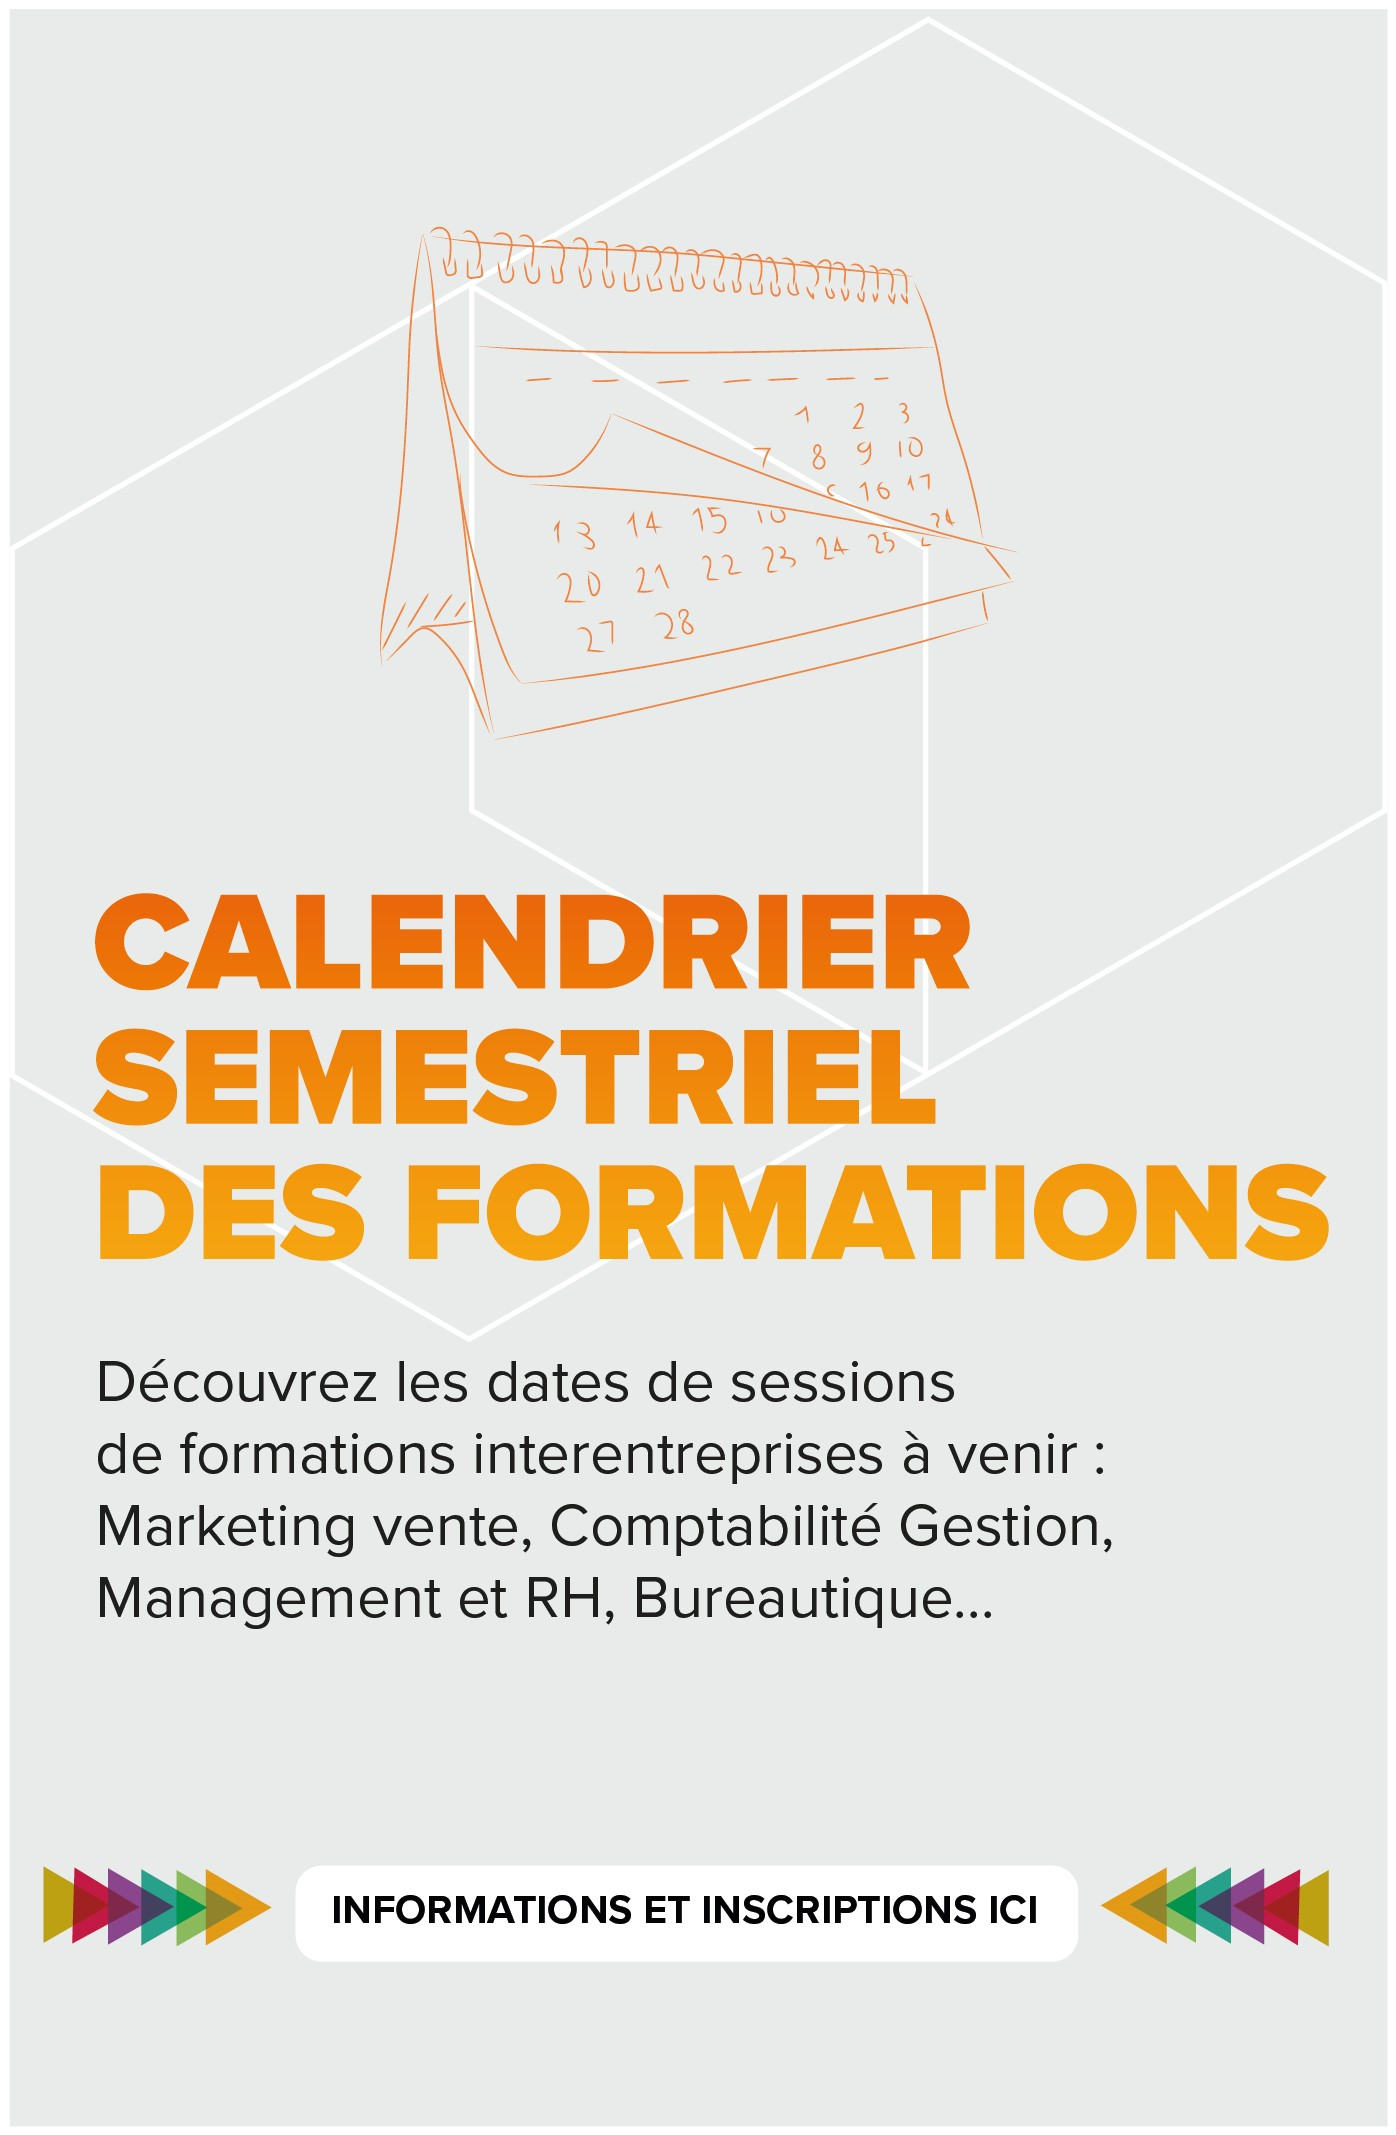 Formation MANAGEMENT & RESSOURCES HUMAINES - Interfor Formation Continue